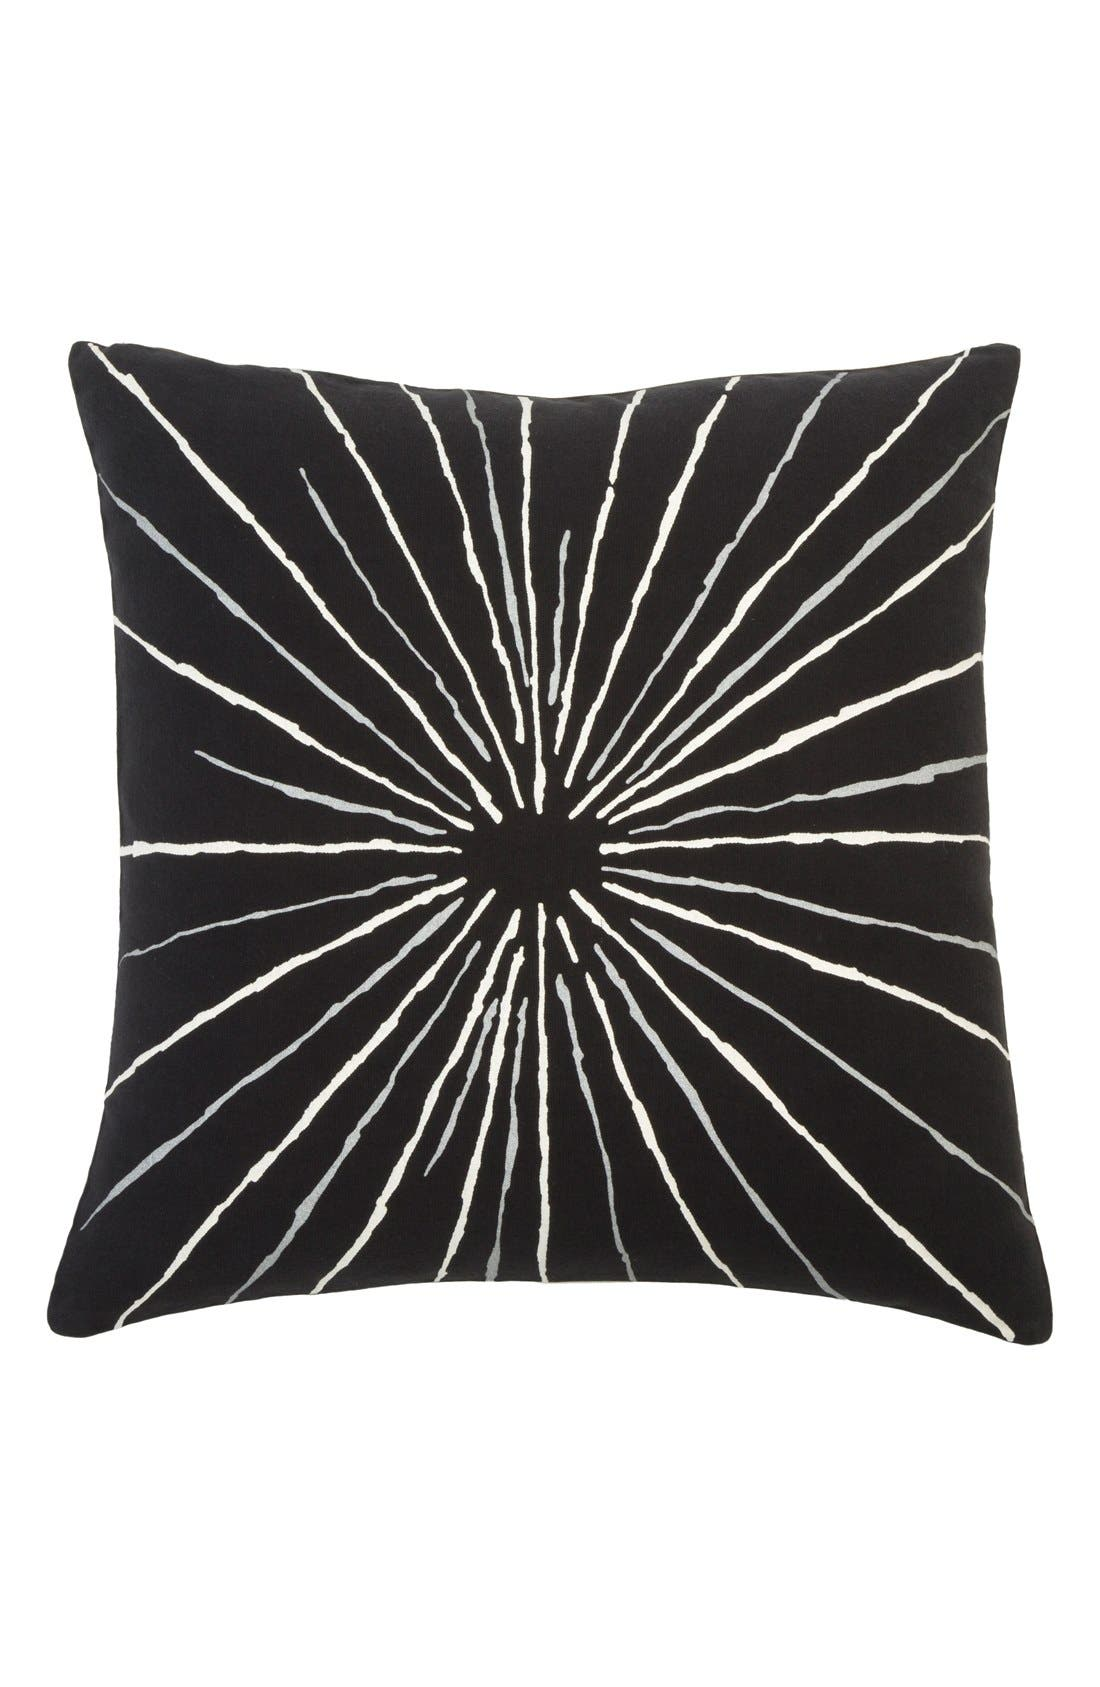 Main Image - Kelly Wearstler 'Paragon Kaleidoscope' Pillow